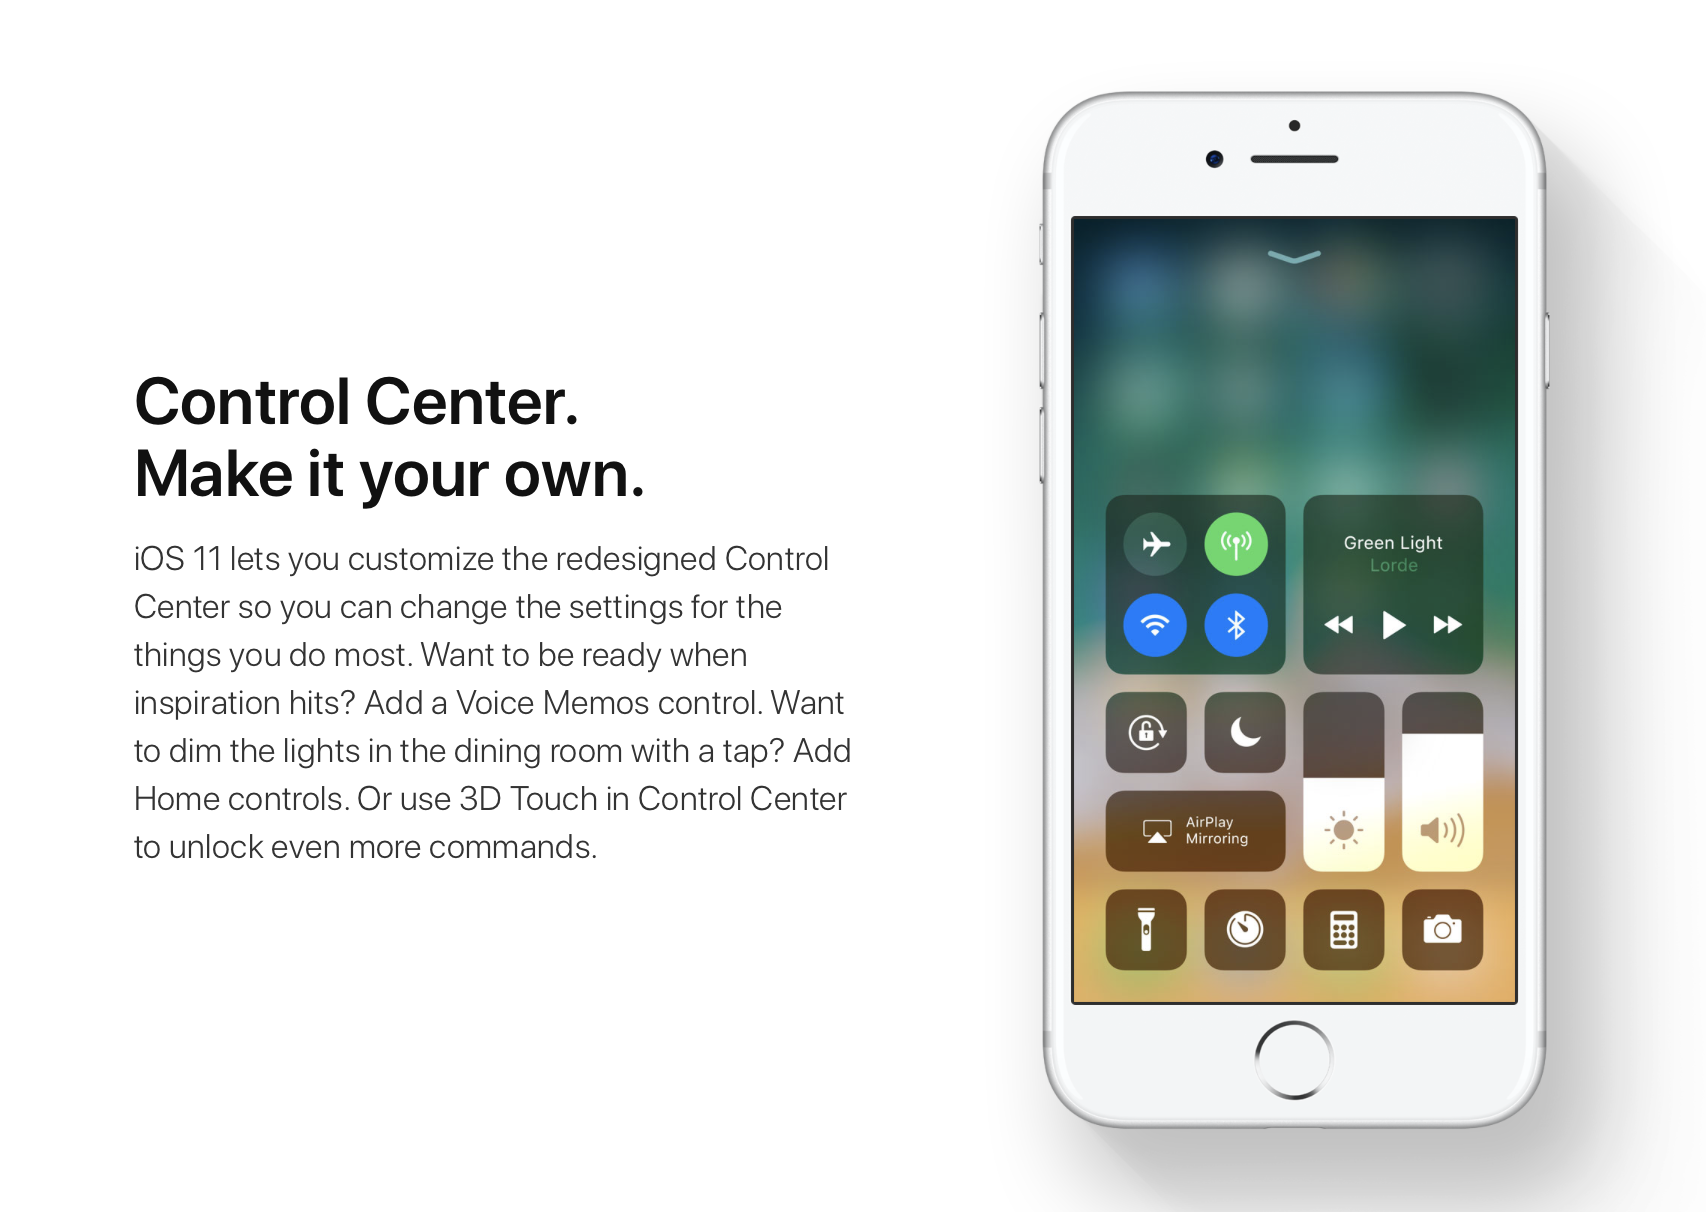 A picture of an iPhone showing the new iOS 11 Control Centre.